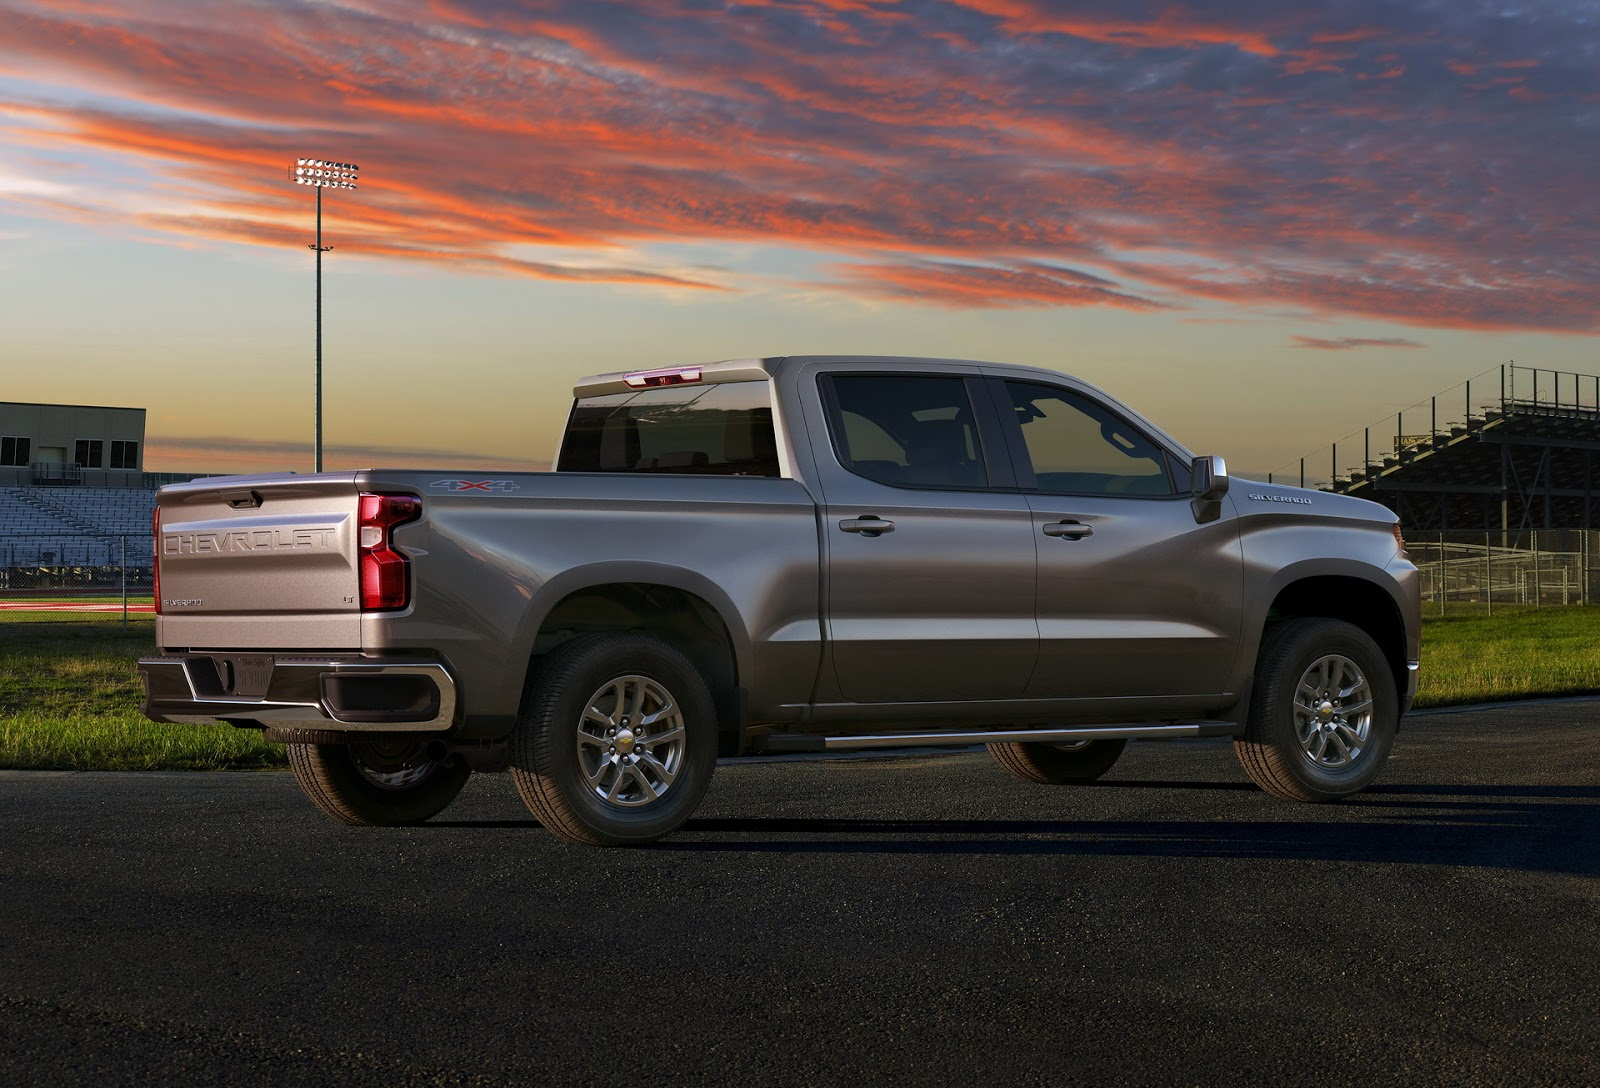 2019 Chevrolet Silverado Unveiled, Drops 450 Pounds, Gains ...